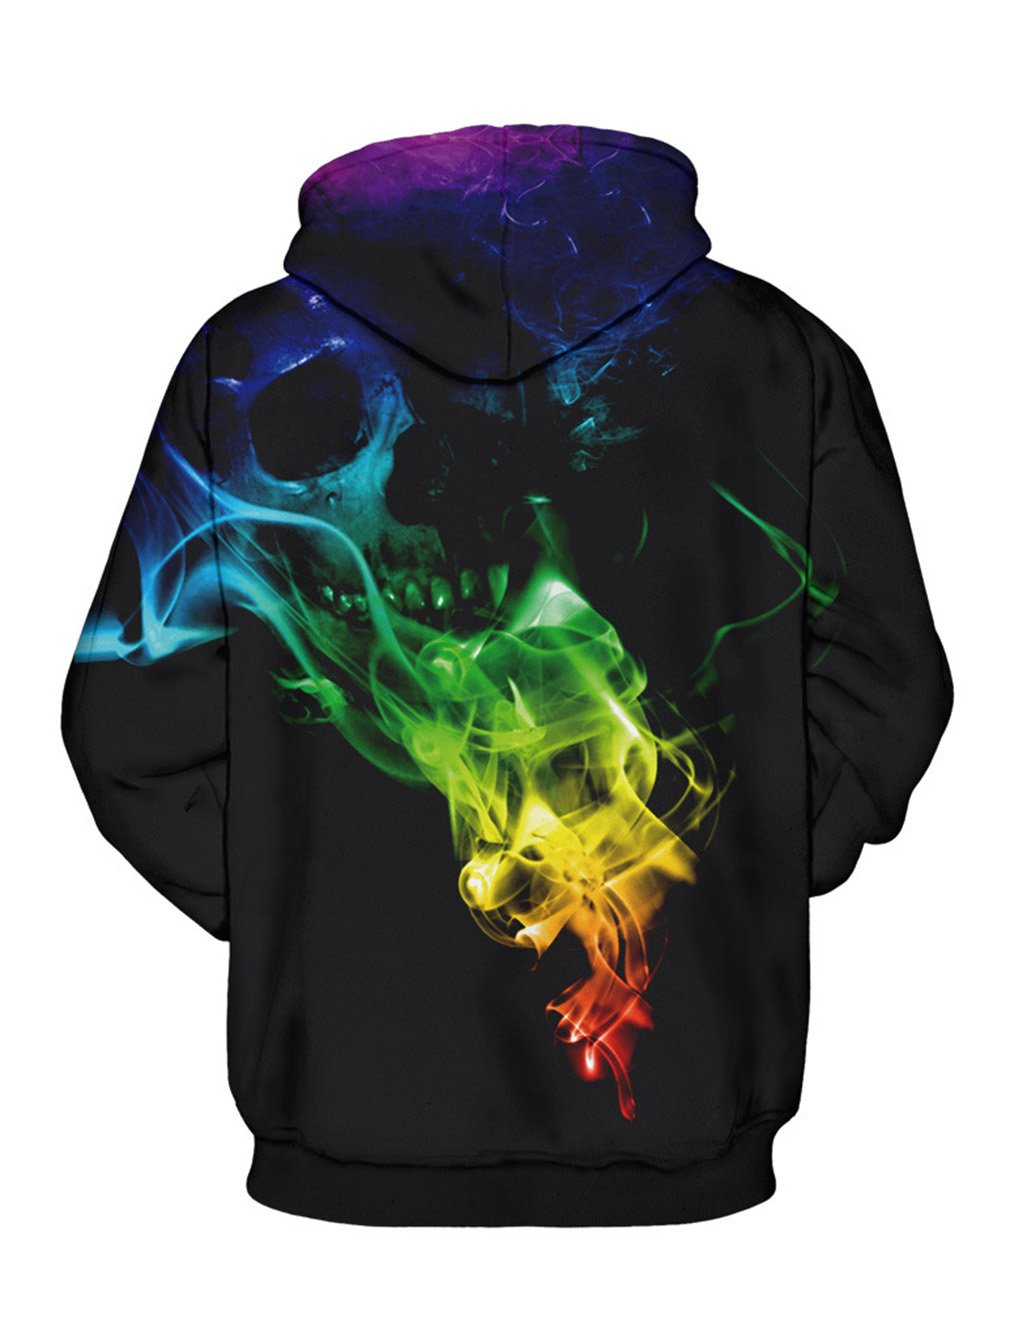 Rainbow Pullover for Adult Colorful Skull Hooded Cute Kids Skeleton Hoodies Drawstring Sweatshirt with Big Pocket Sports Couple Wear Outfits Party Costumes Size Large/X-Large